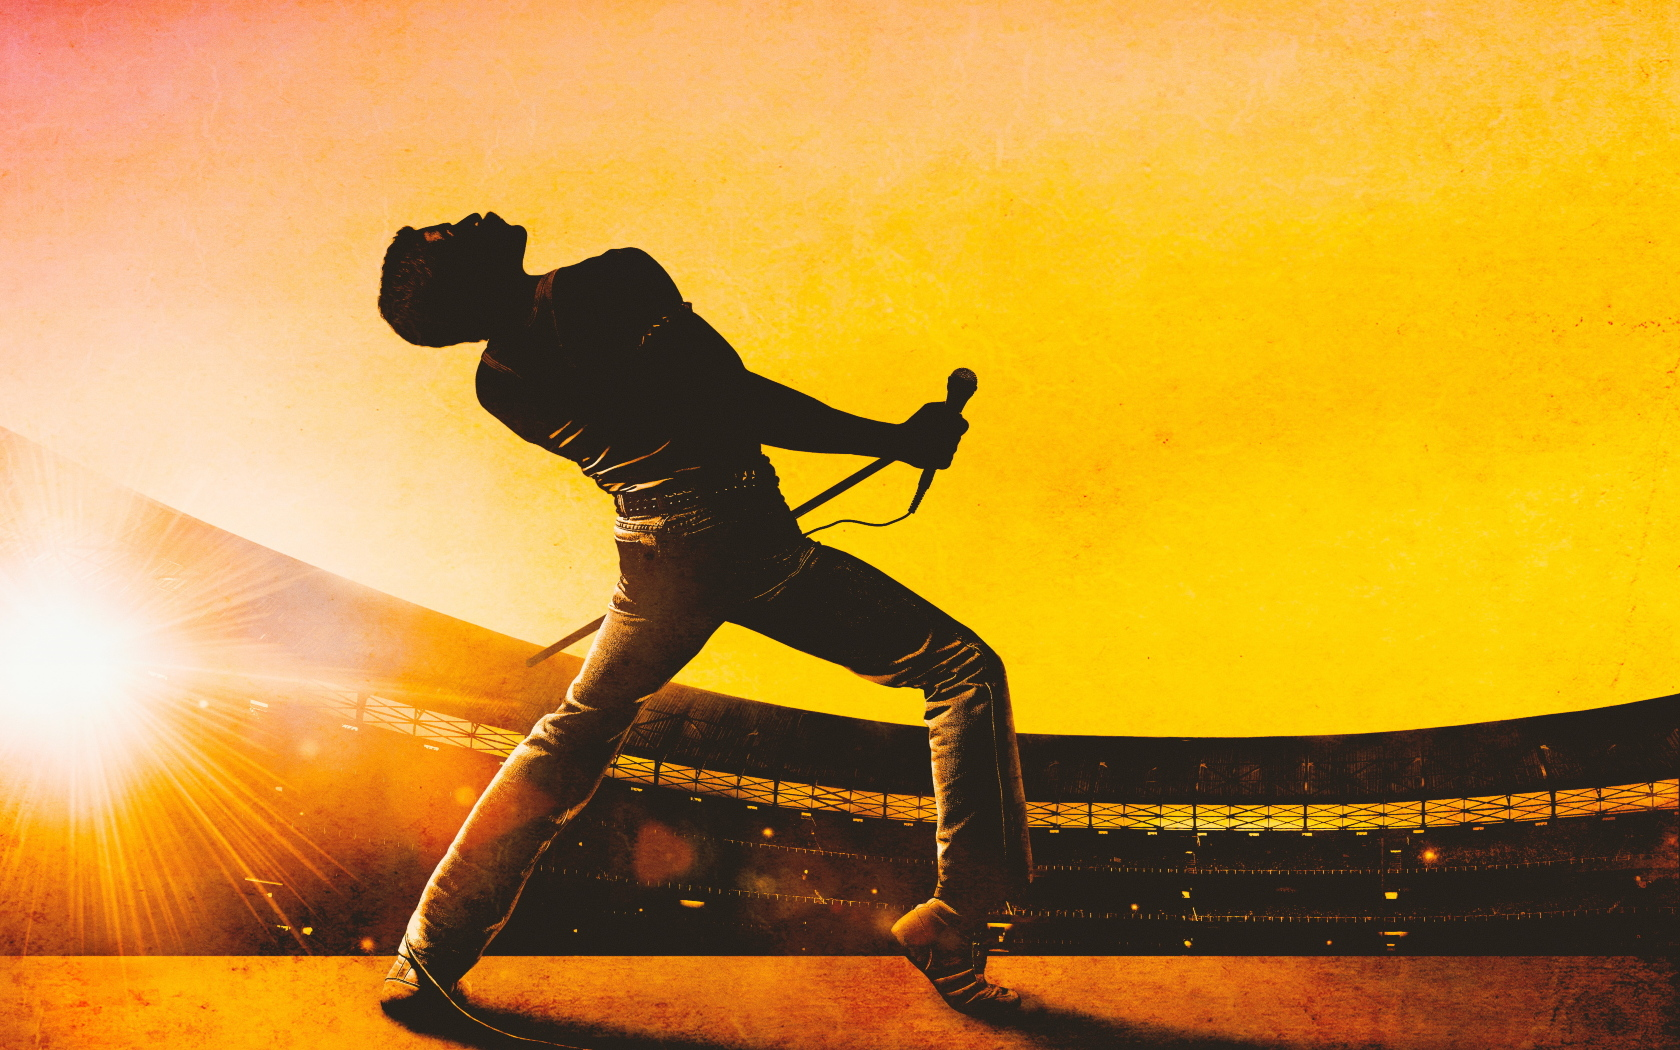 Download bohemian rhapsody 2018 movie fan poster 240x320 - Fan wallpaper download ...